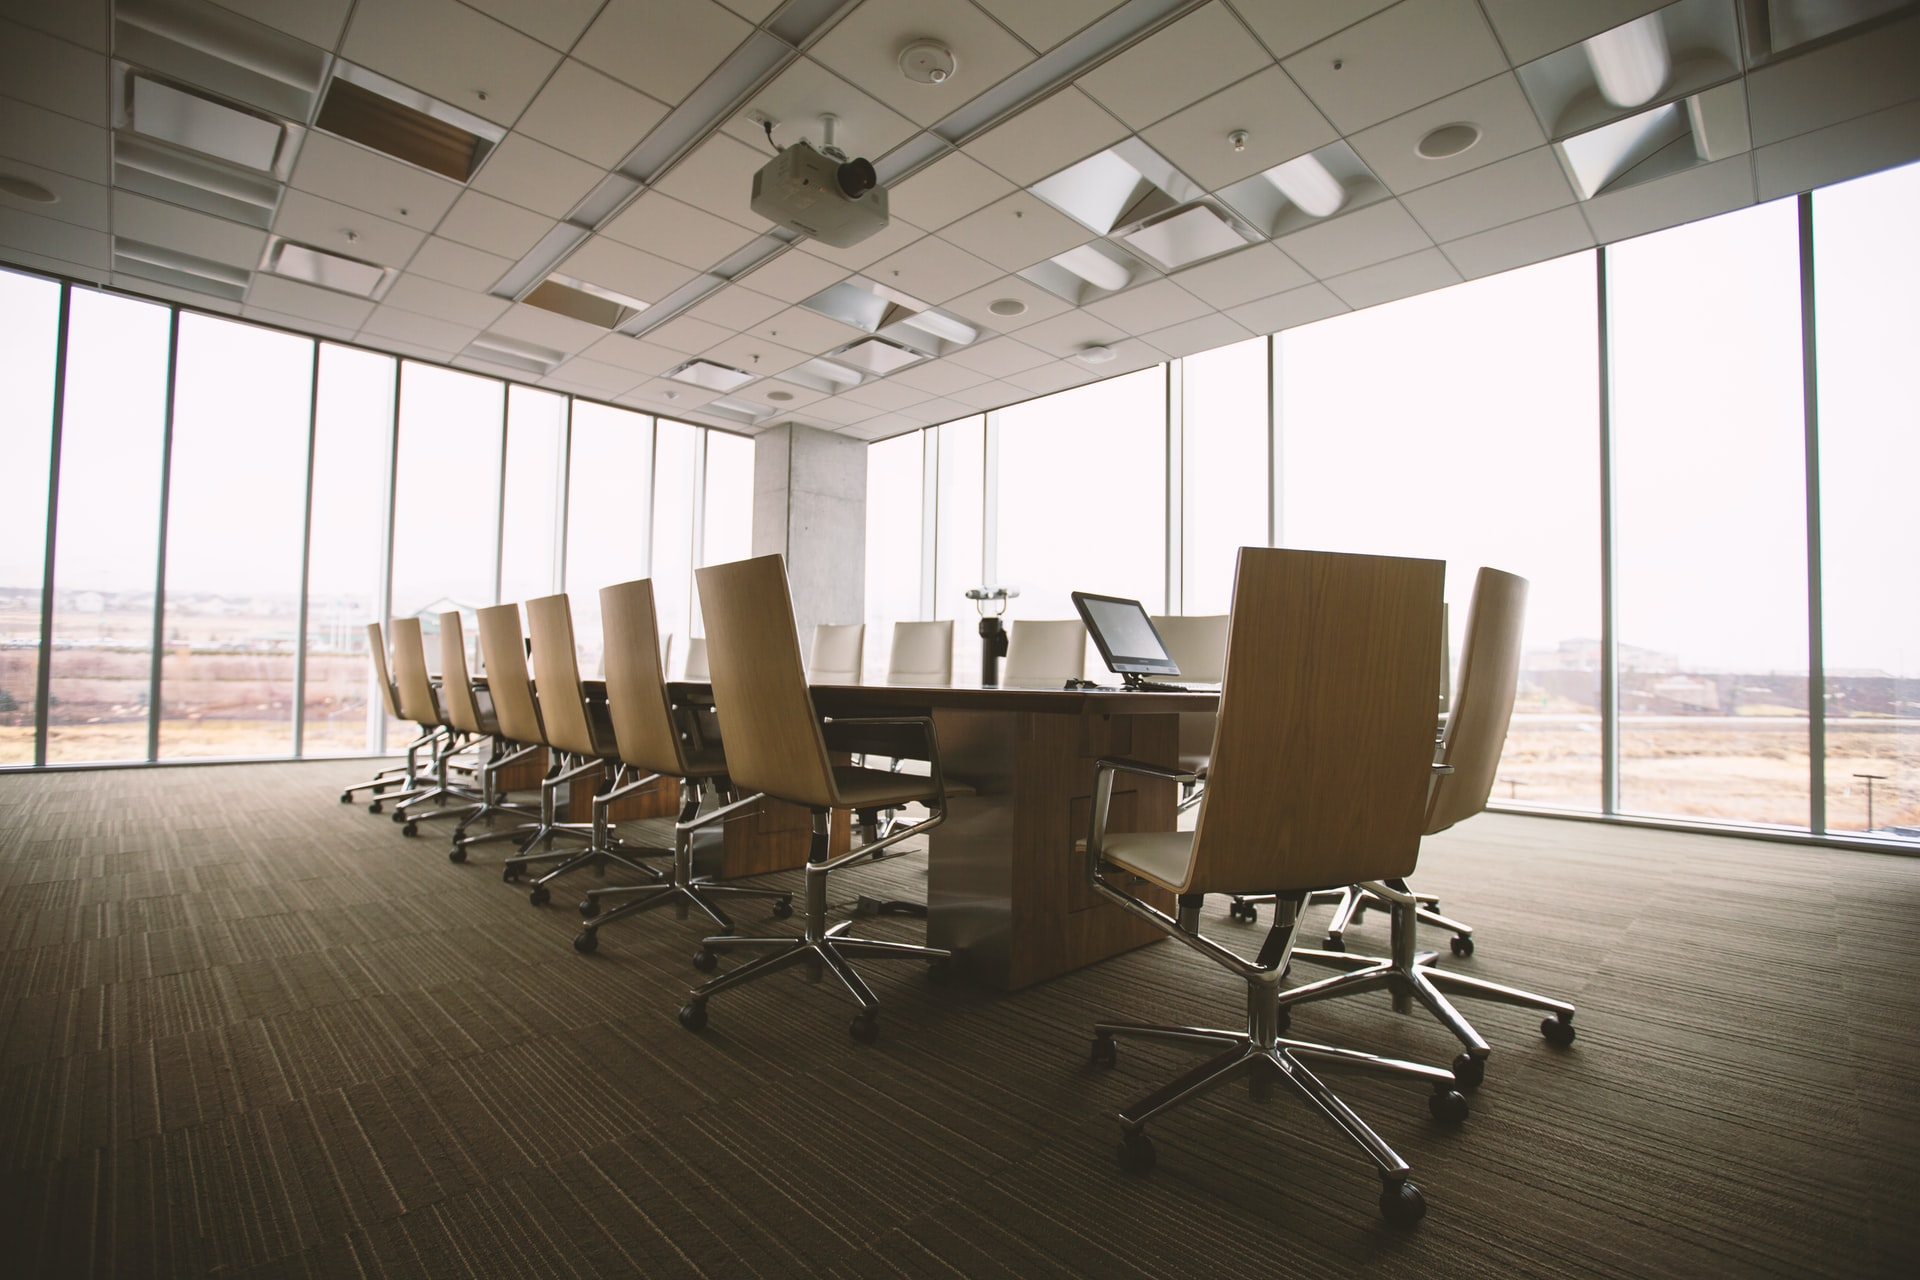 executive-search-firms-are-synchronizing-the-c-suite-article-husky-executive